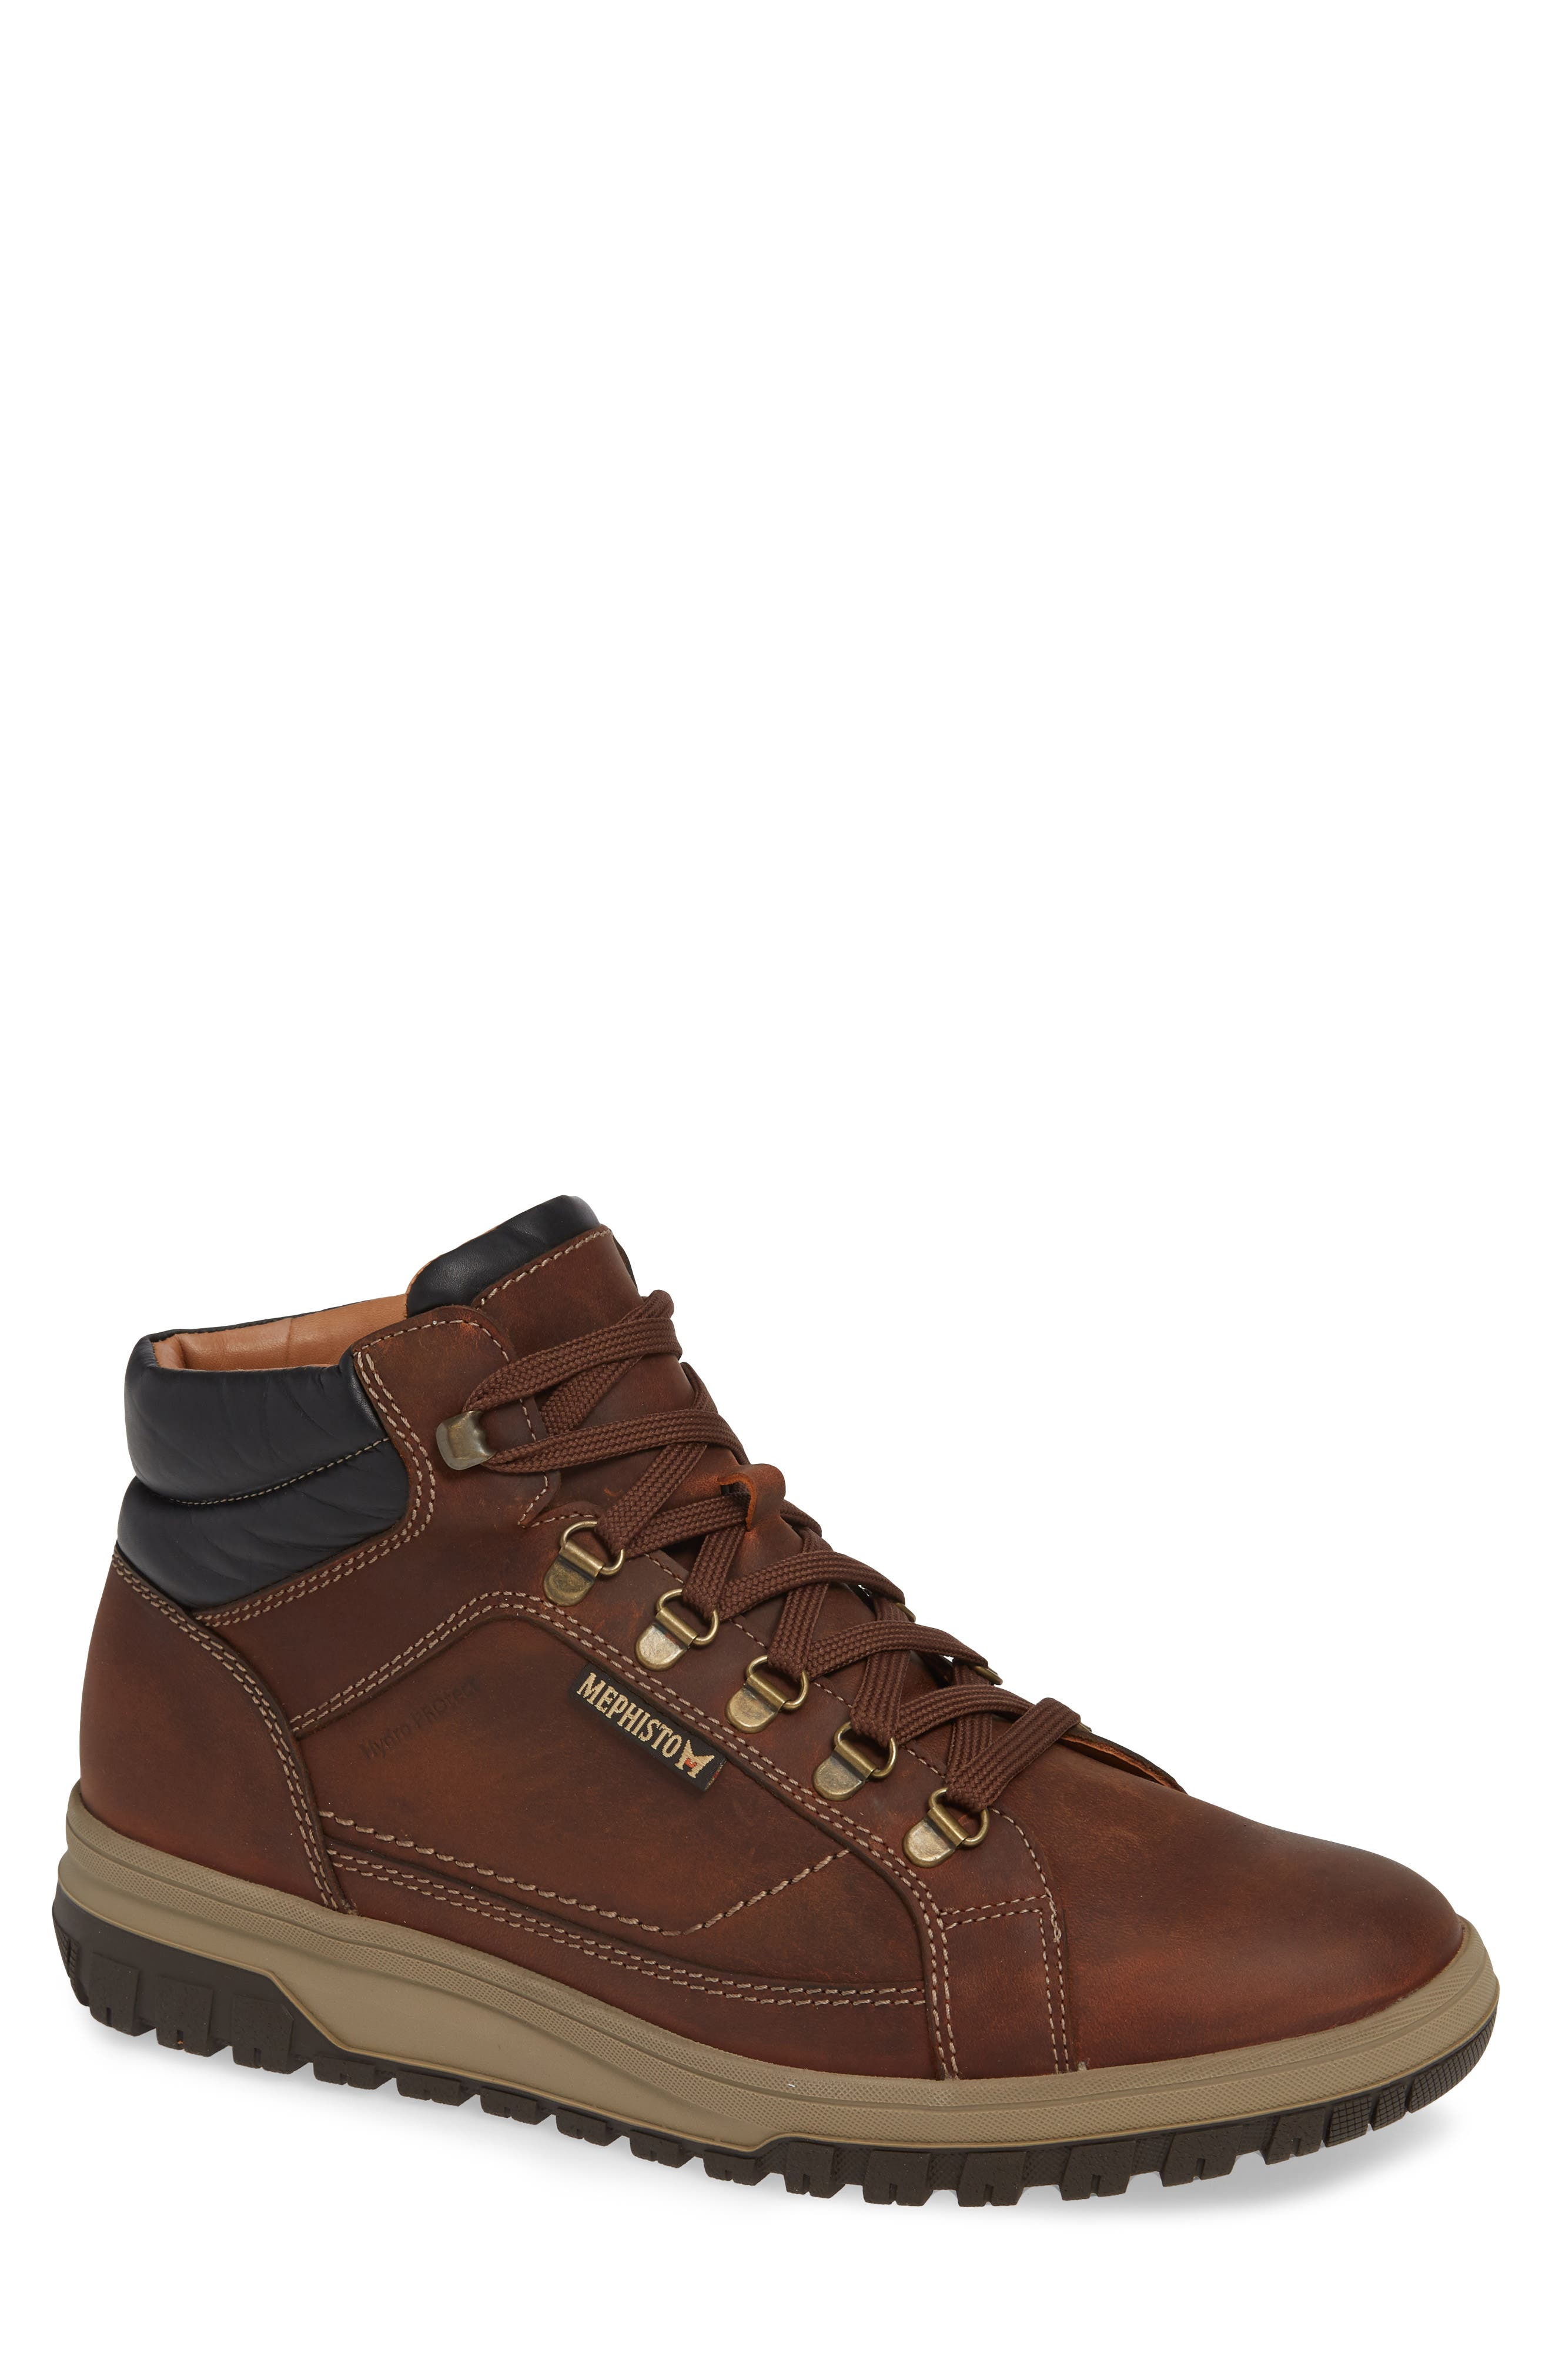 MEPHISTO, Pitt Mid Lace-Up Boot, Main thumbnail 1, color, 213